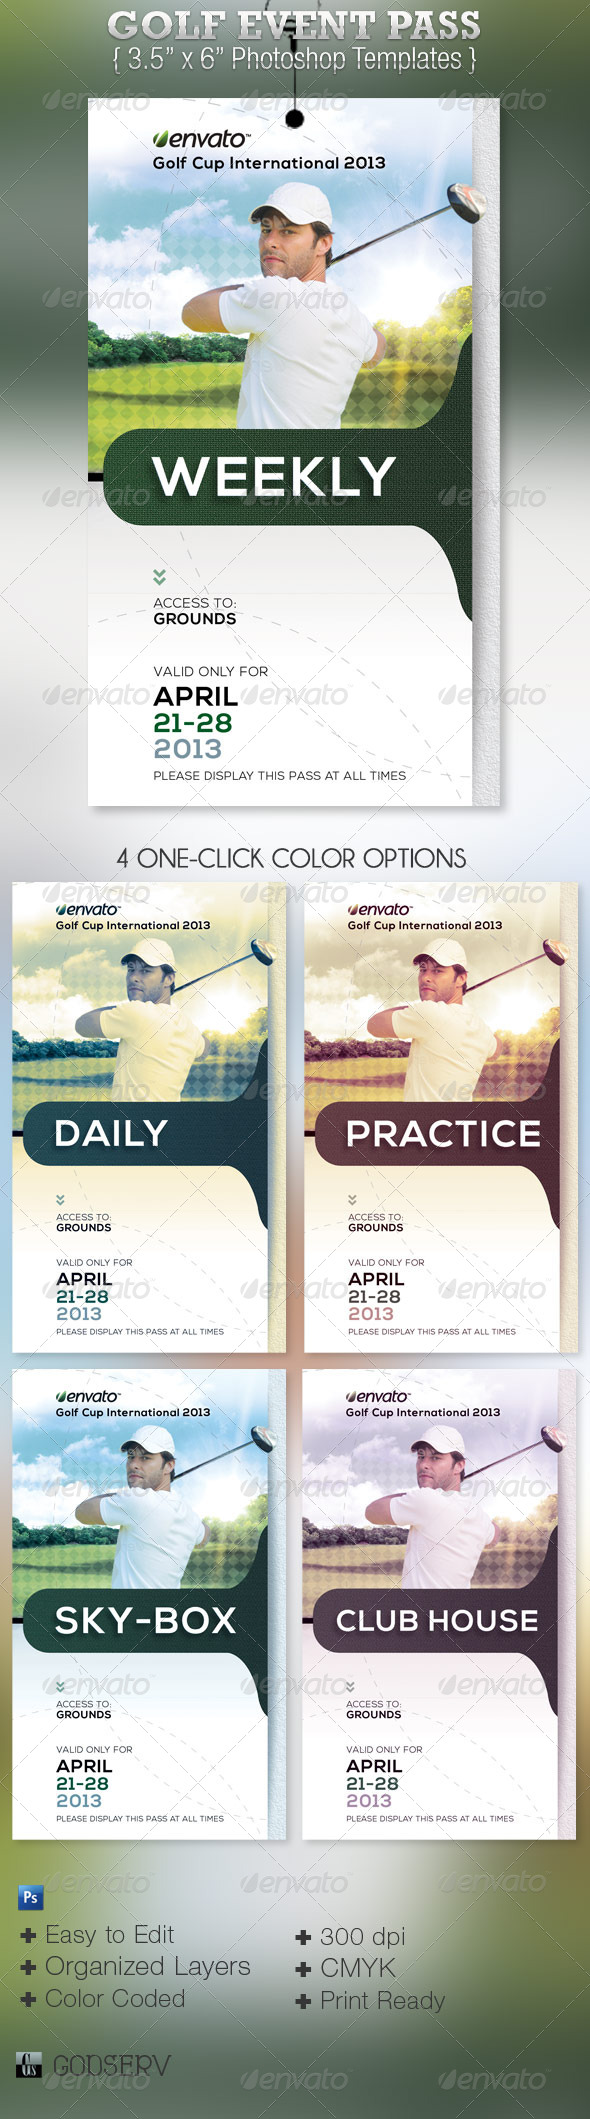 Golf Event Pass Template - Miscellaneous Print Templates